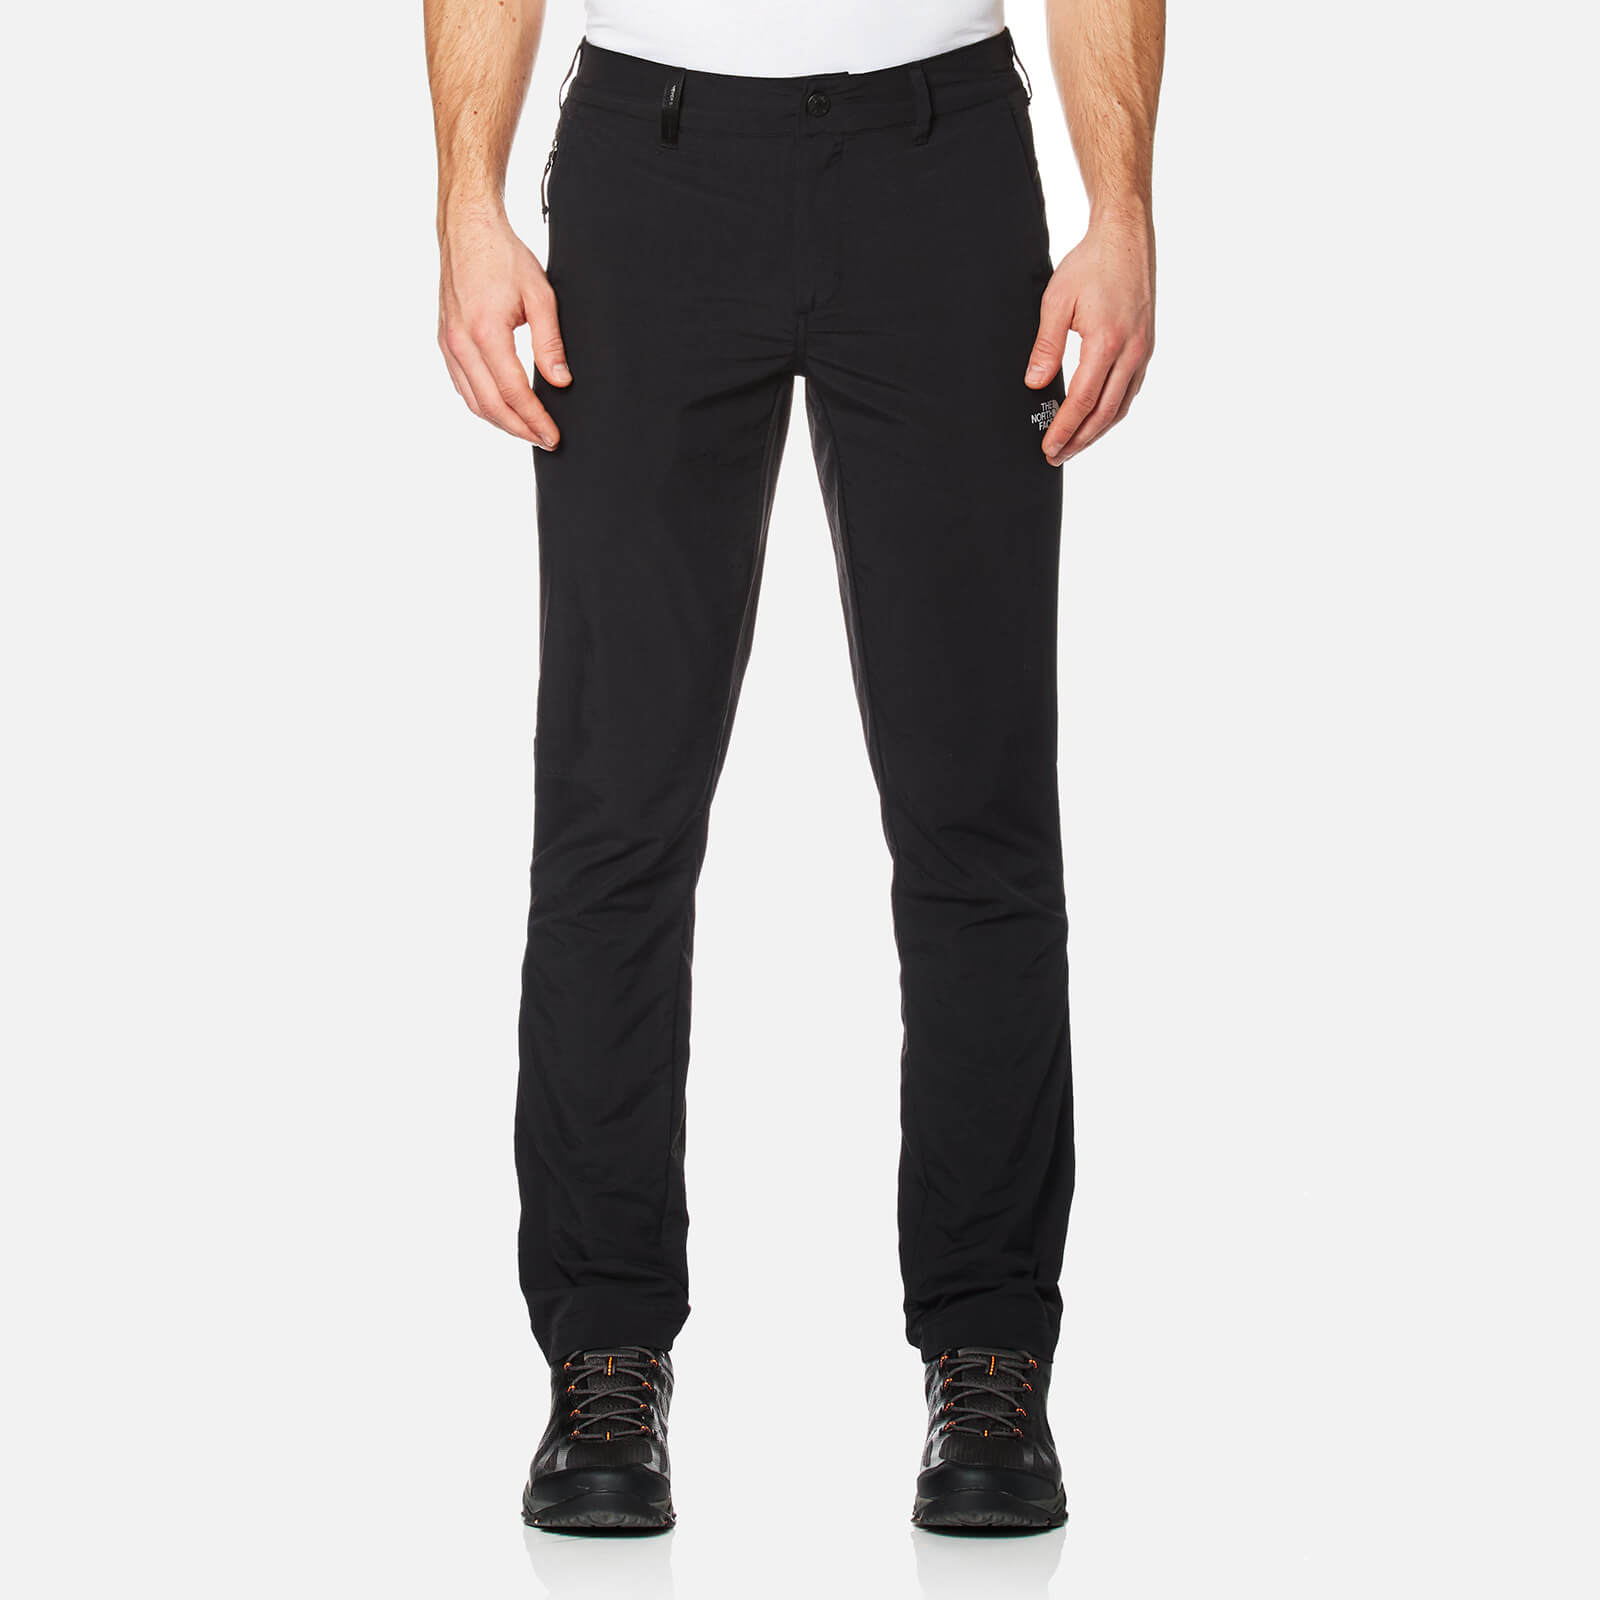 7f8835ebf The North Face Men's Tanken Pants - TNF Black